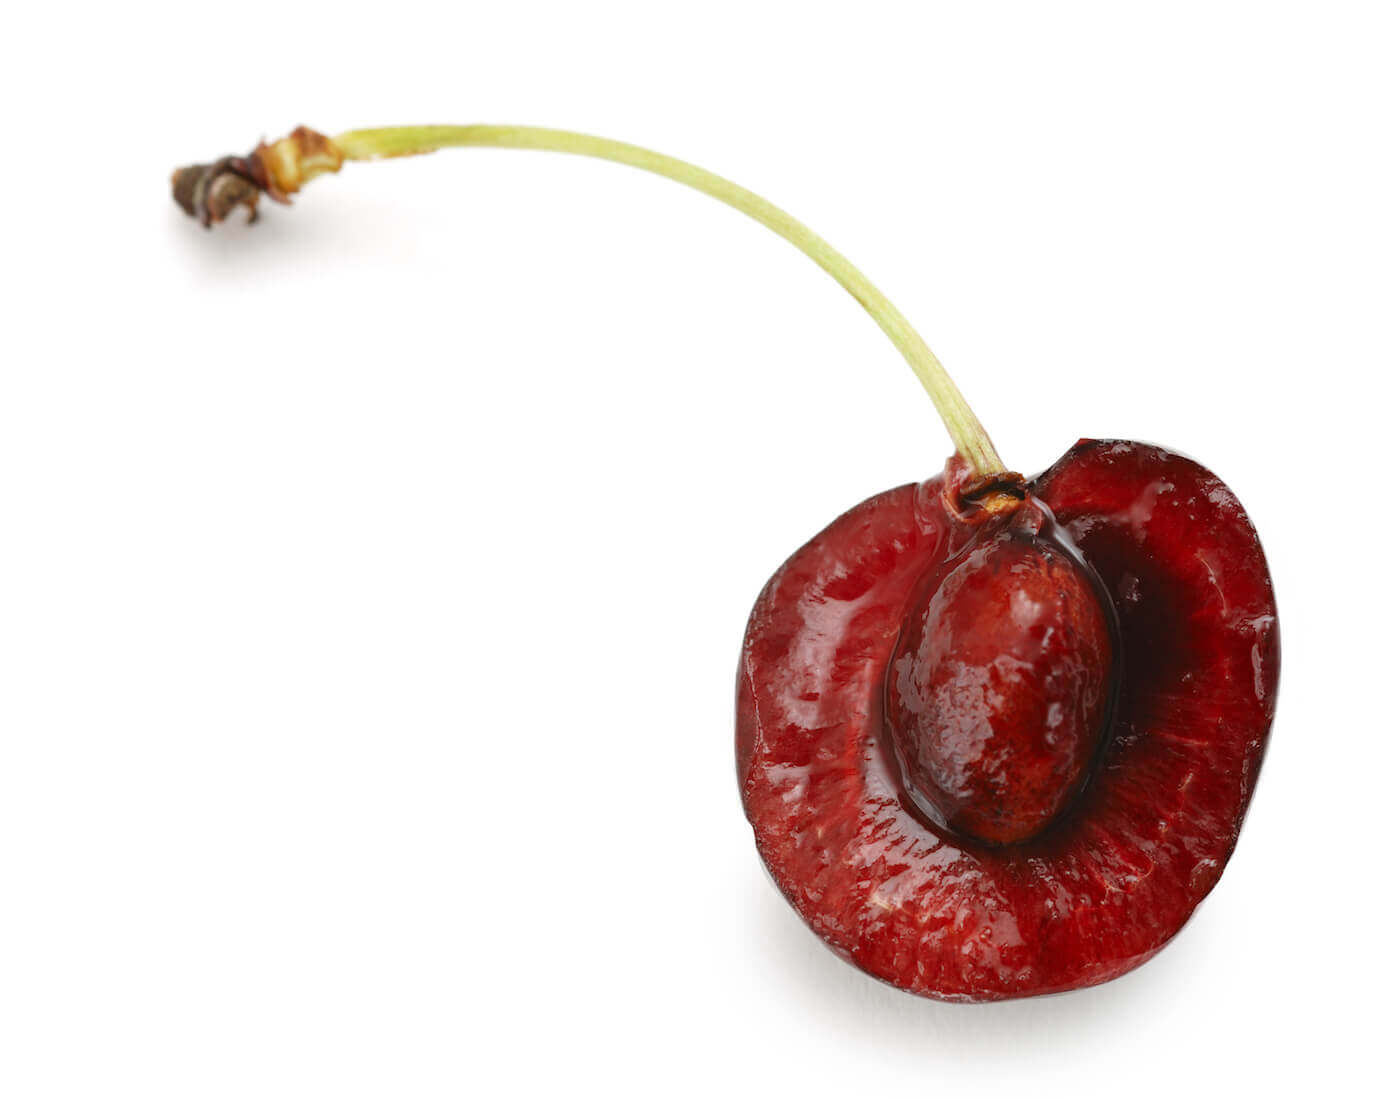 Halved Black Cherry with Pit Showing